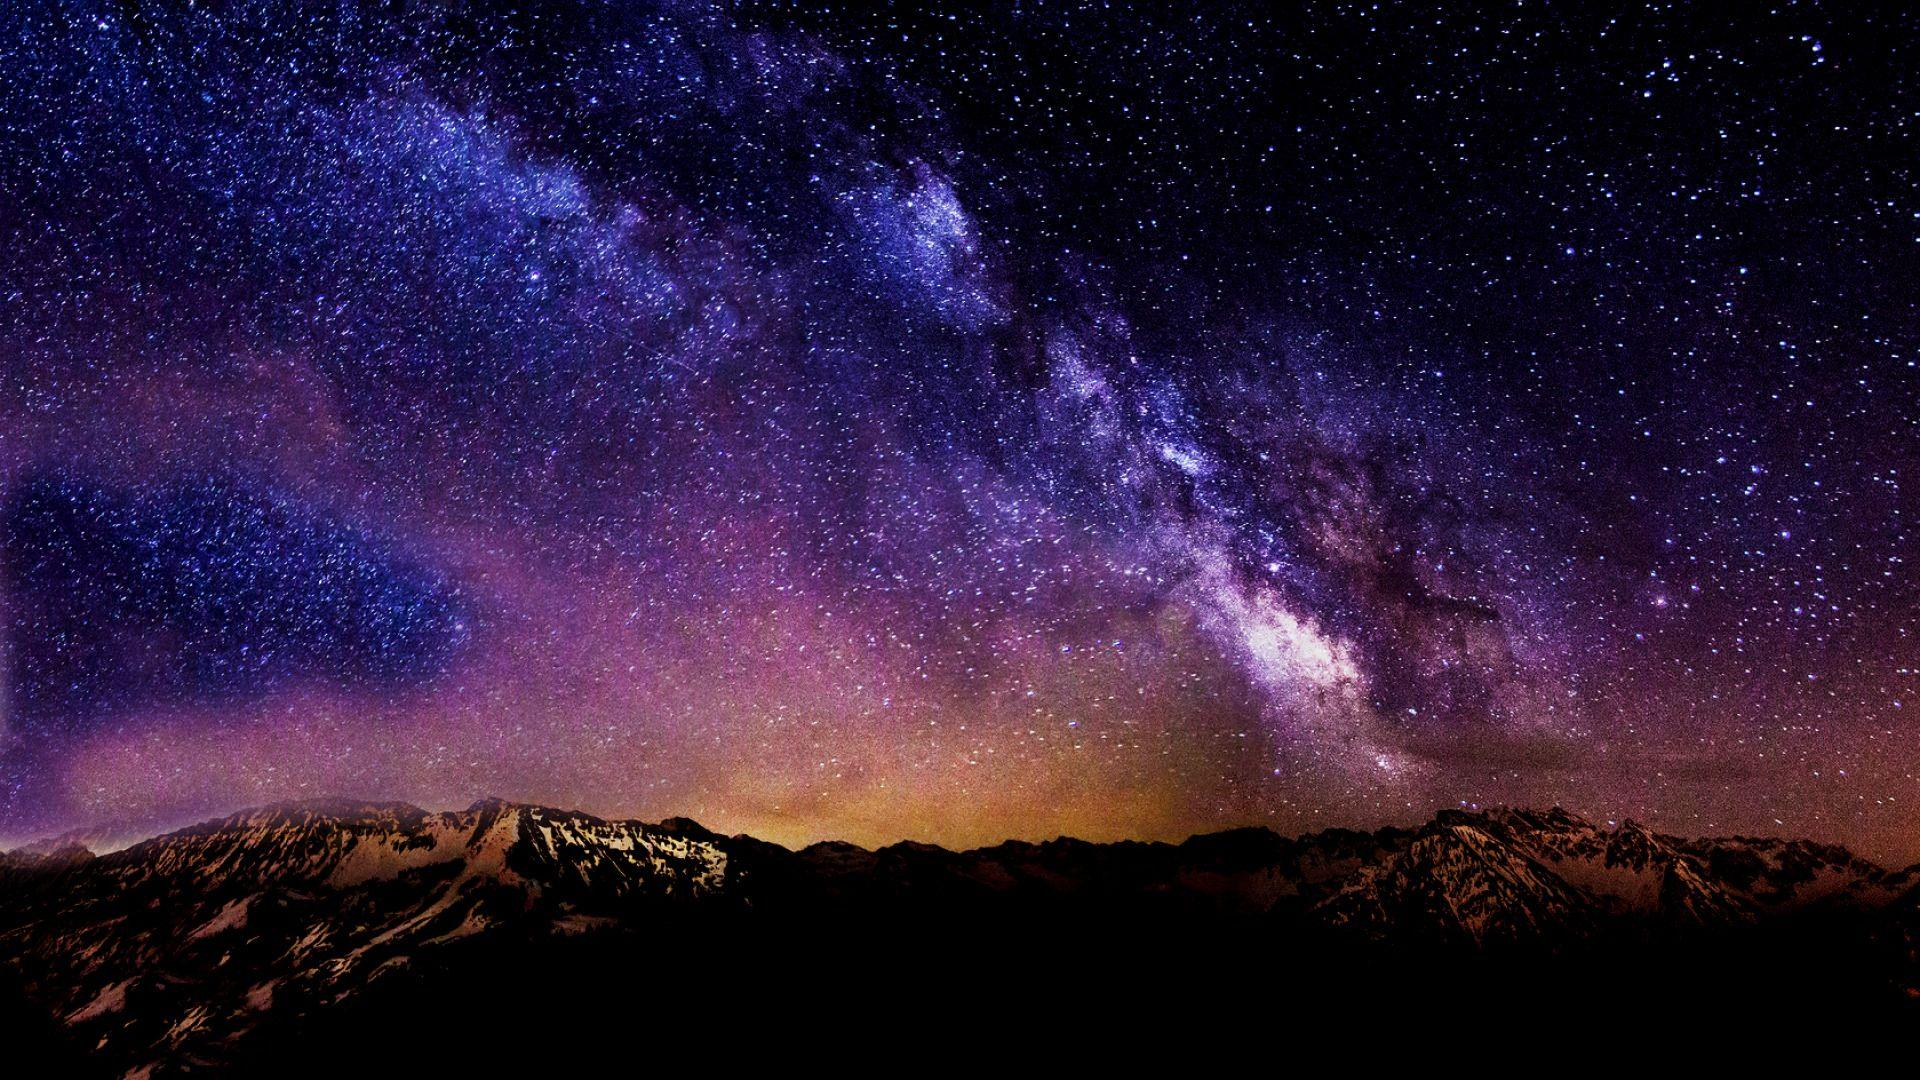 Starry Night Sky Wallpapers HD - Wallpaper Cave